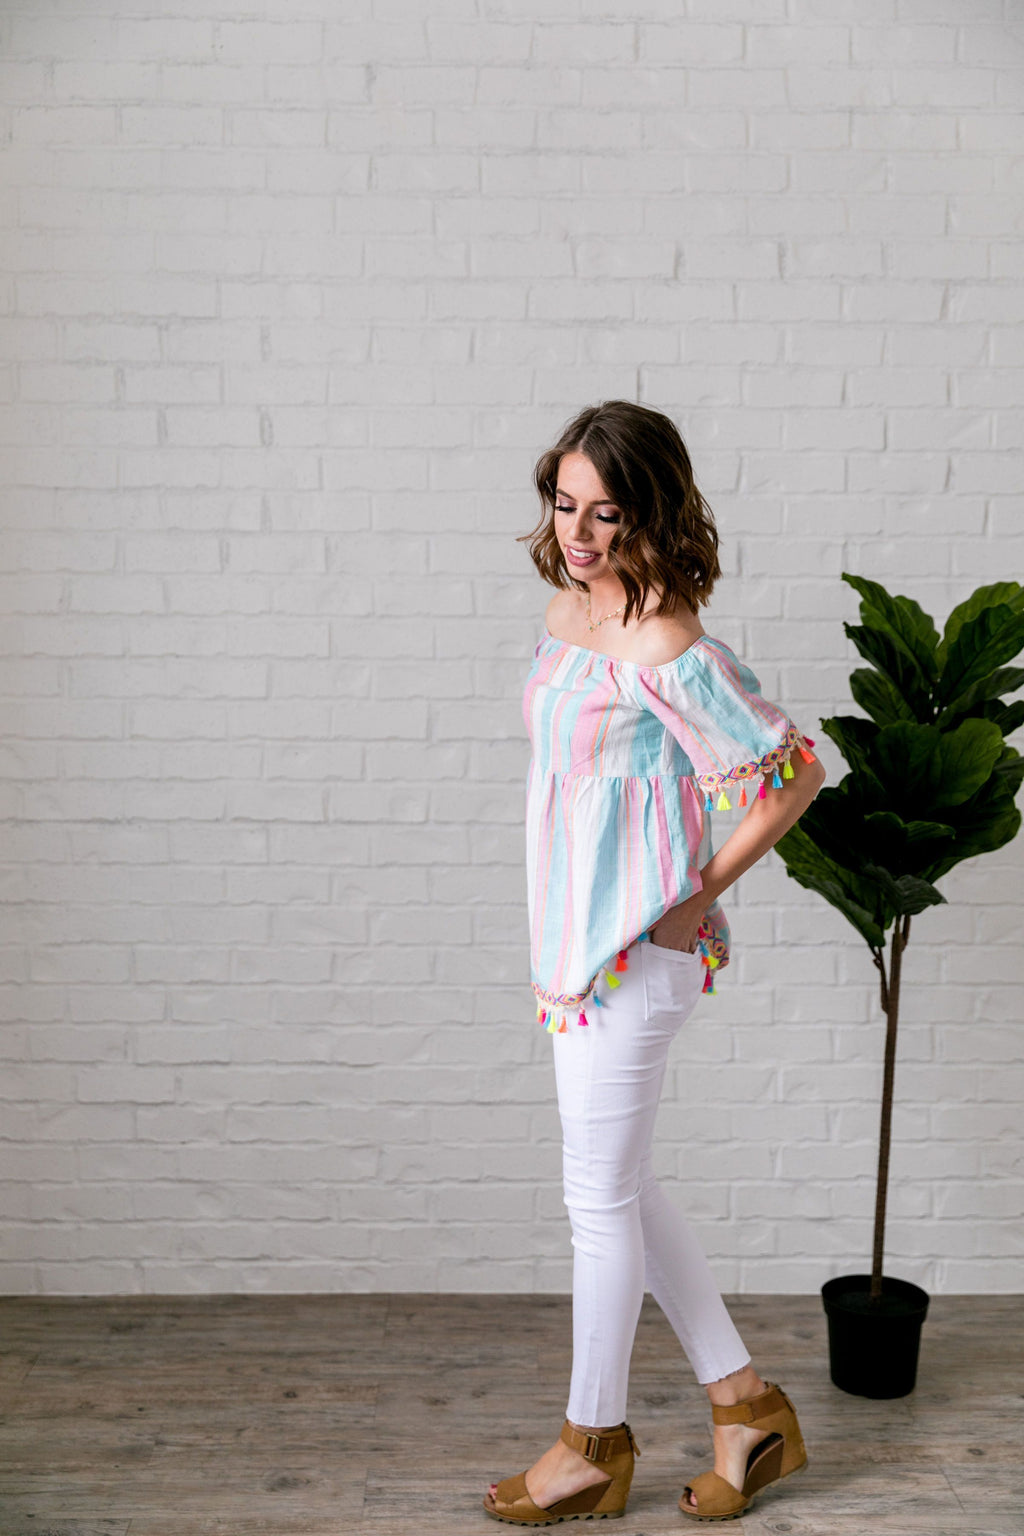 Fiesta Fringed Off The Shoulder Top - SHOPTHRIVER